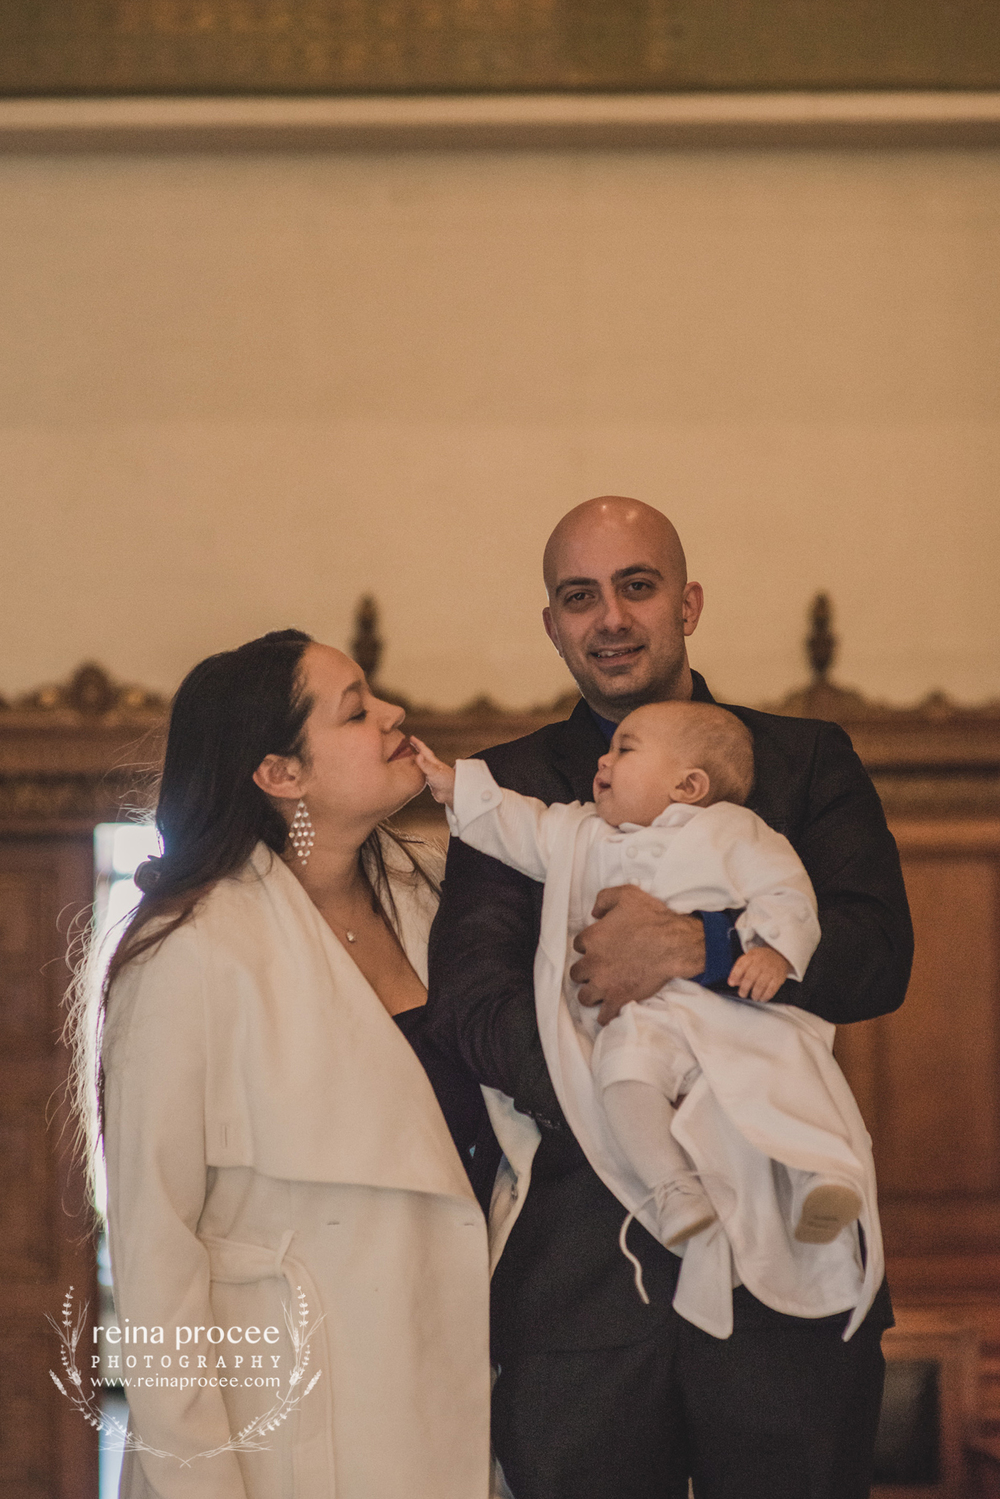 054-baptism-photographer-montreal-family-best-photos-portraits.jpg